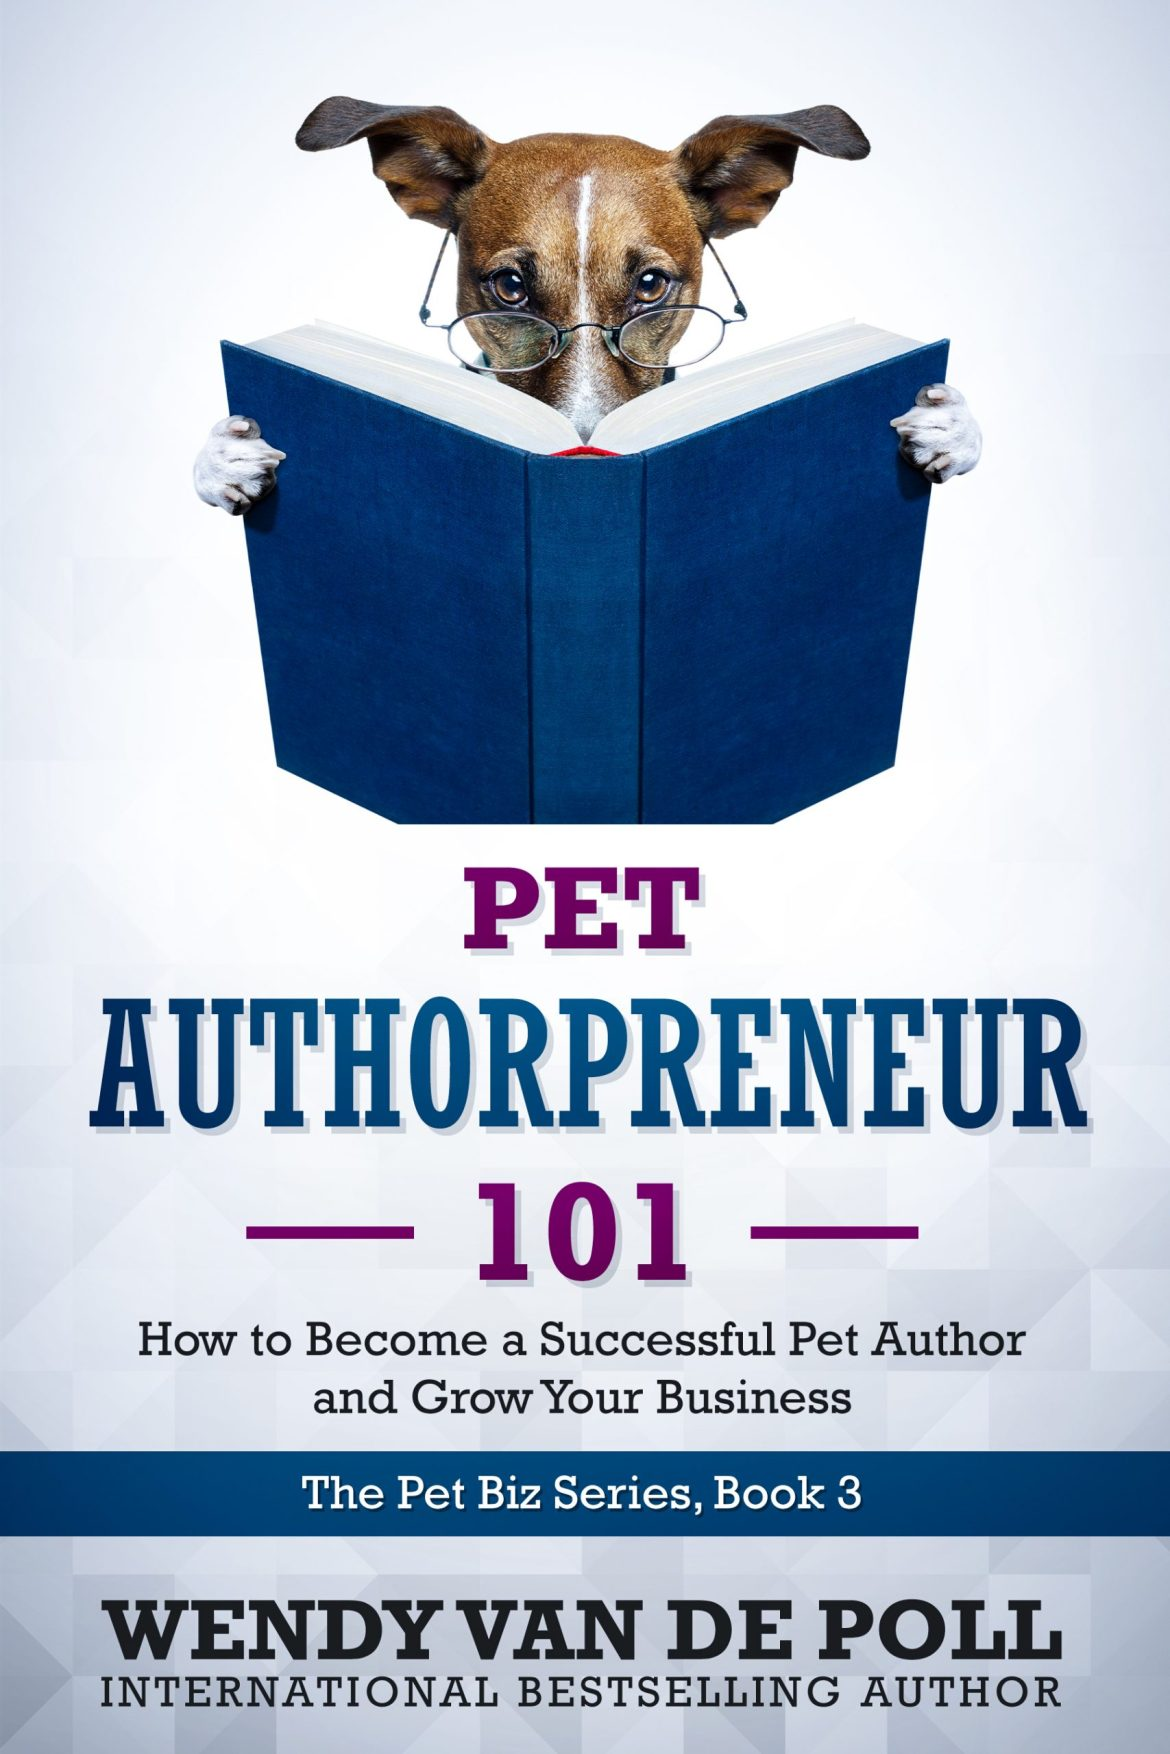 Pet Authorpreneur 101